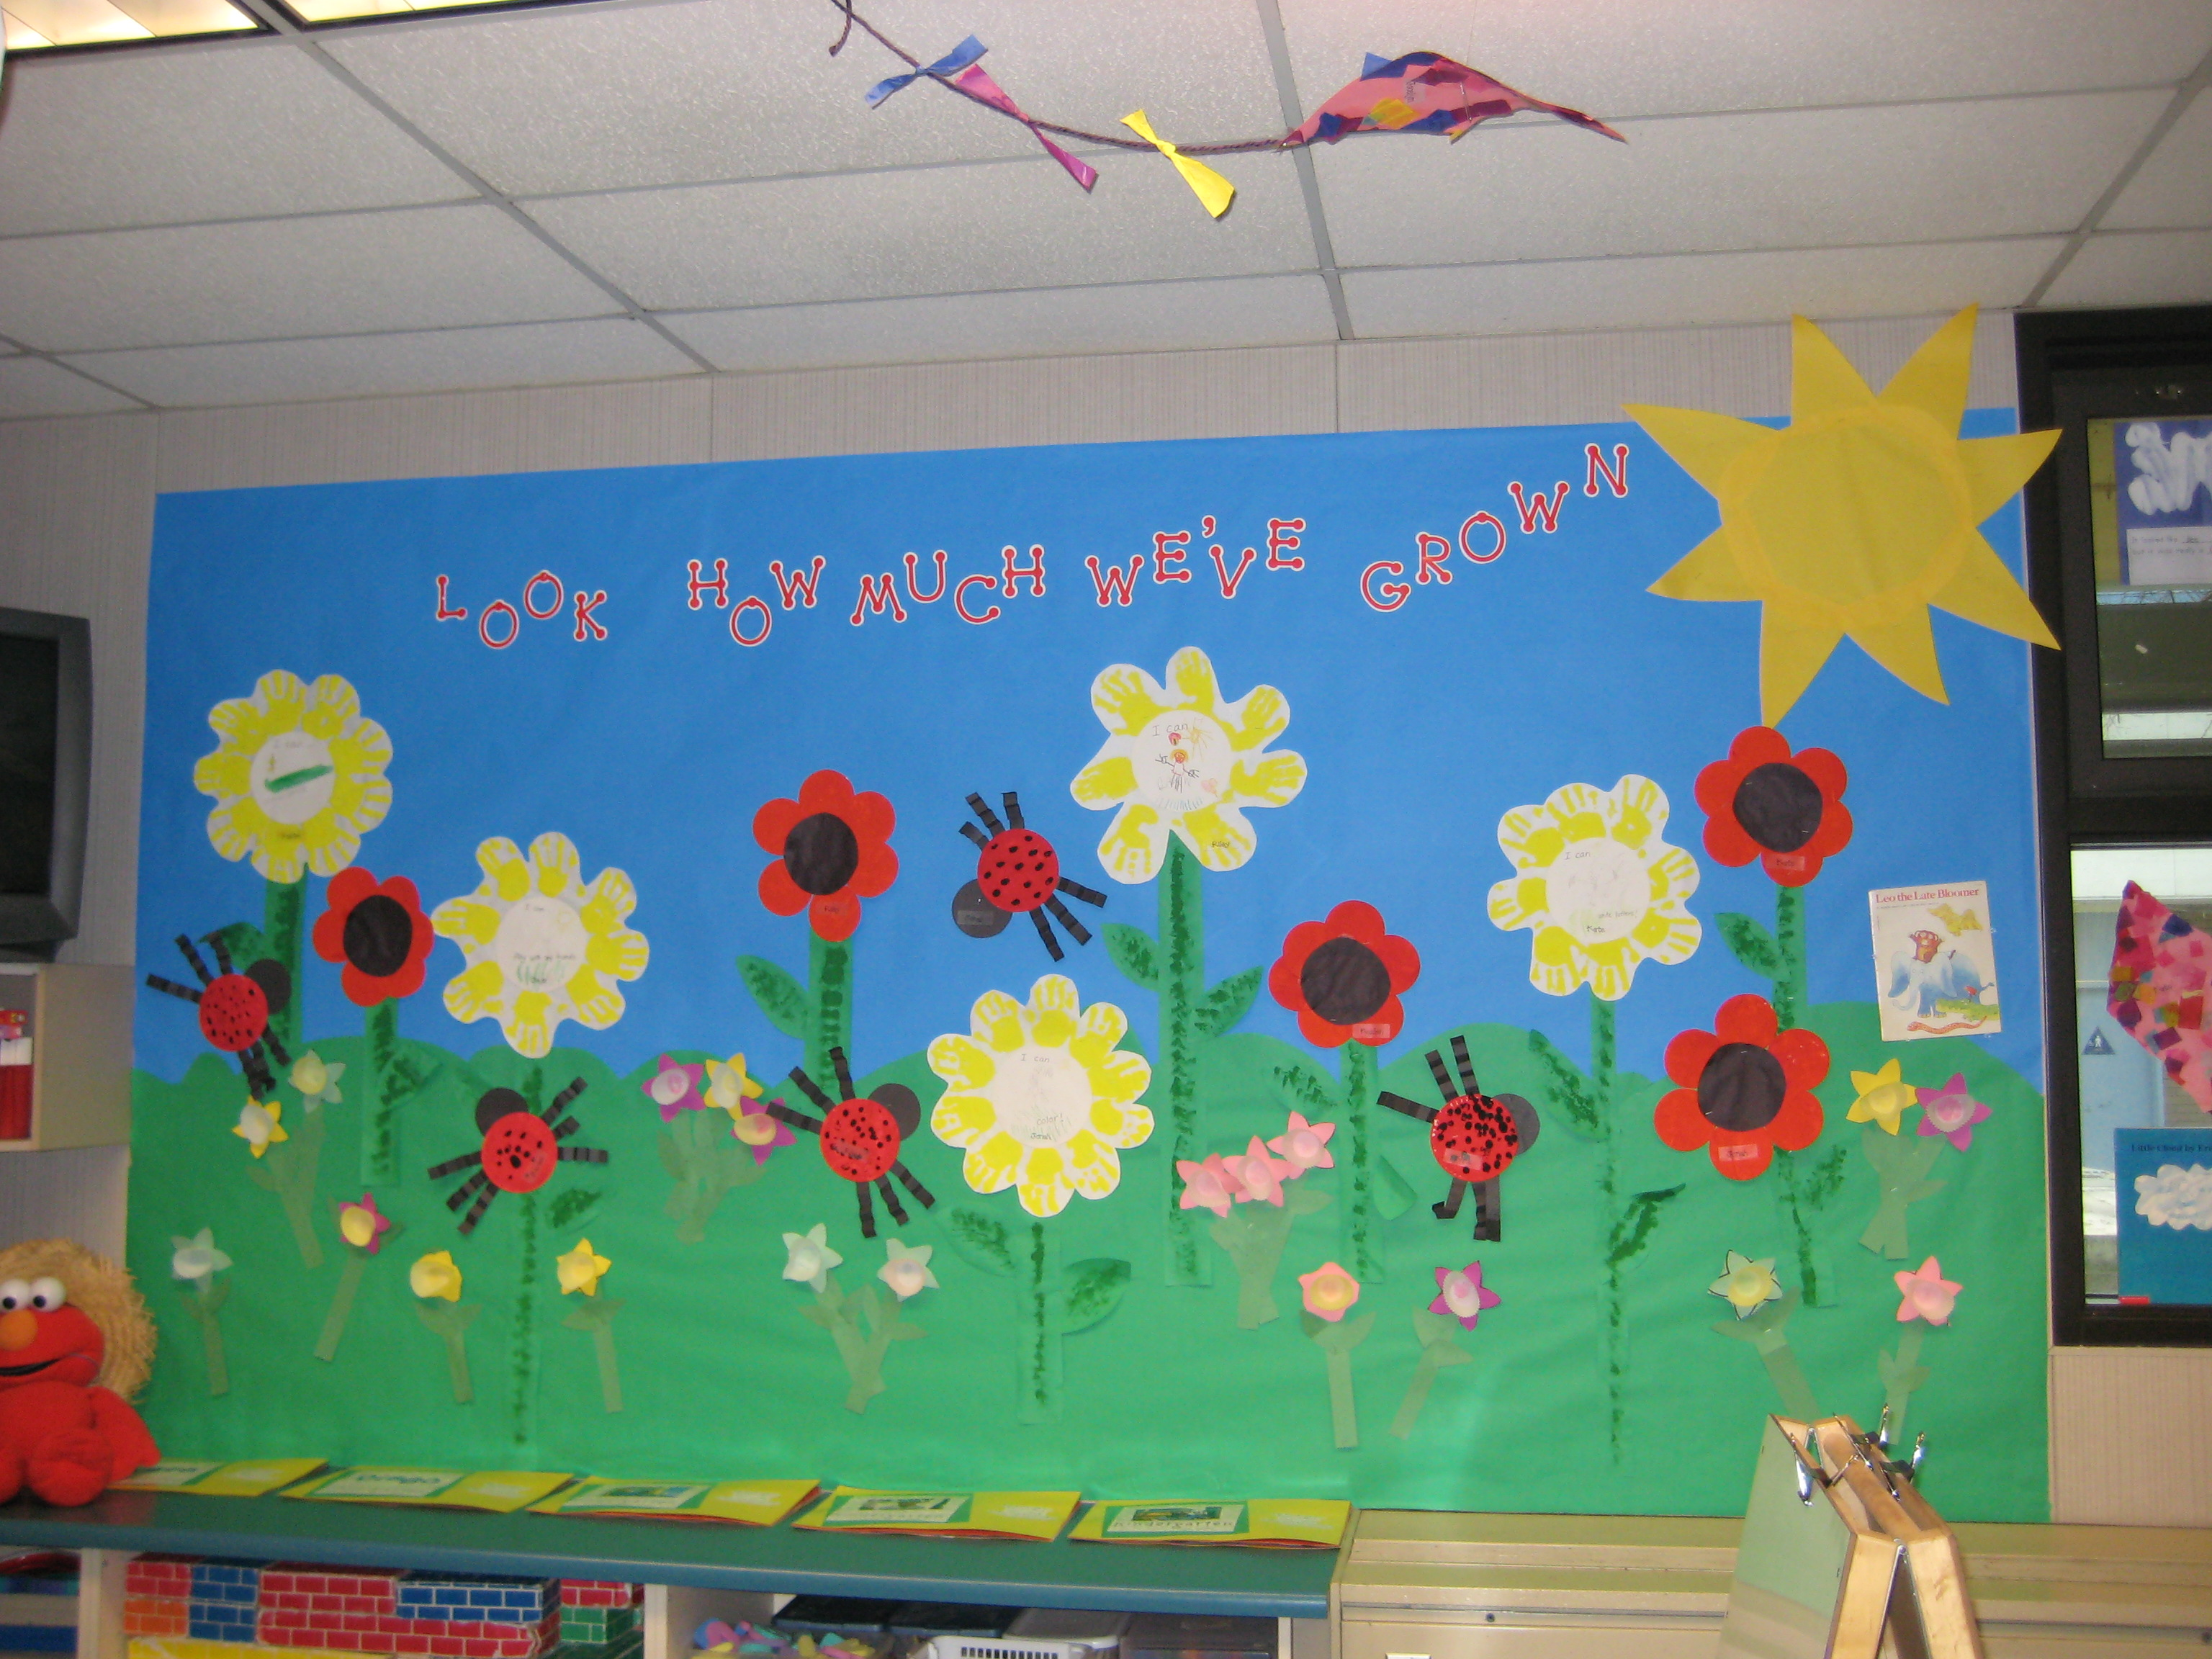 classroom decoration ideas  u2013 page 2  u2013 mrs  kilburn u0026 39 s kiddos